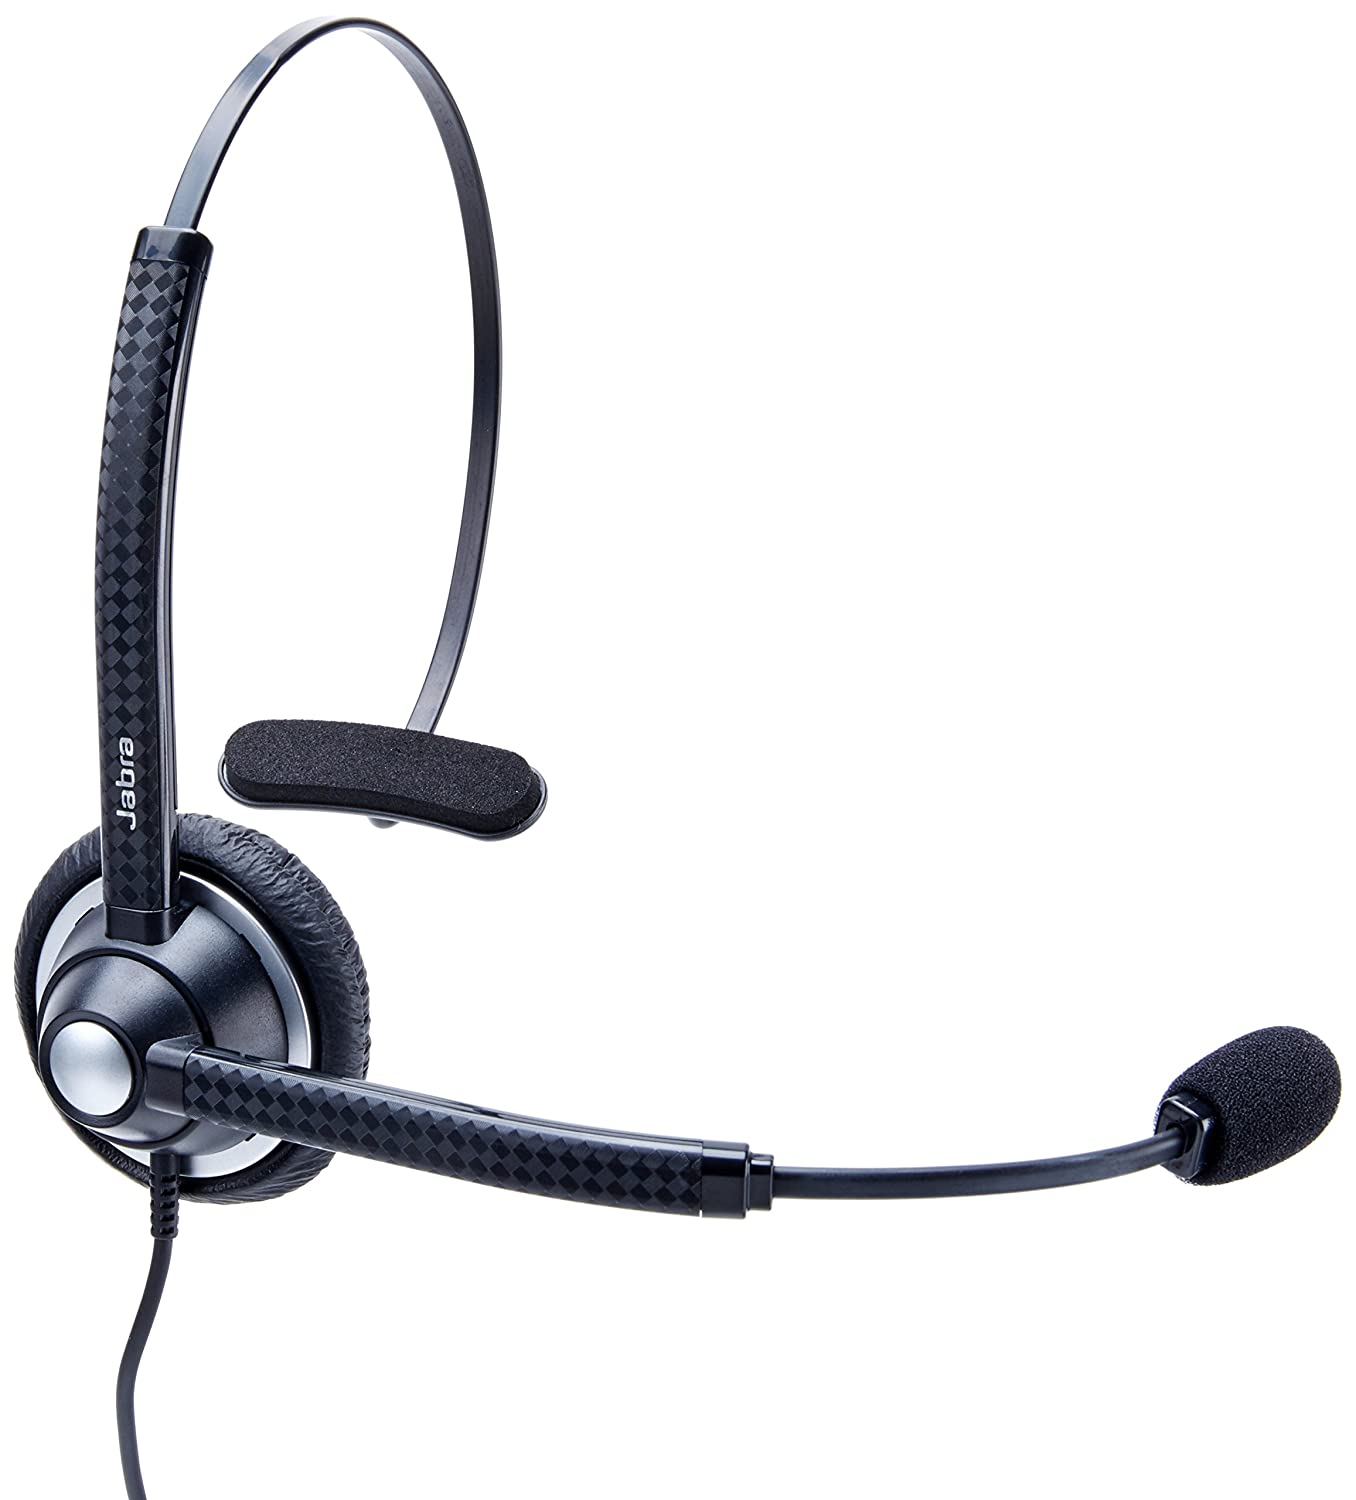 Amazon.com: Jabra BIZ 1900-1920 Mono Telephone Headset, QD Connect